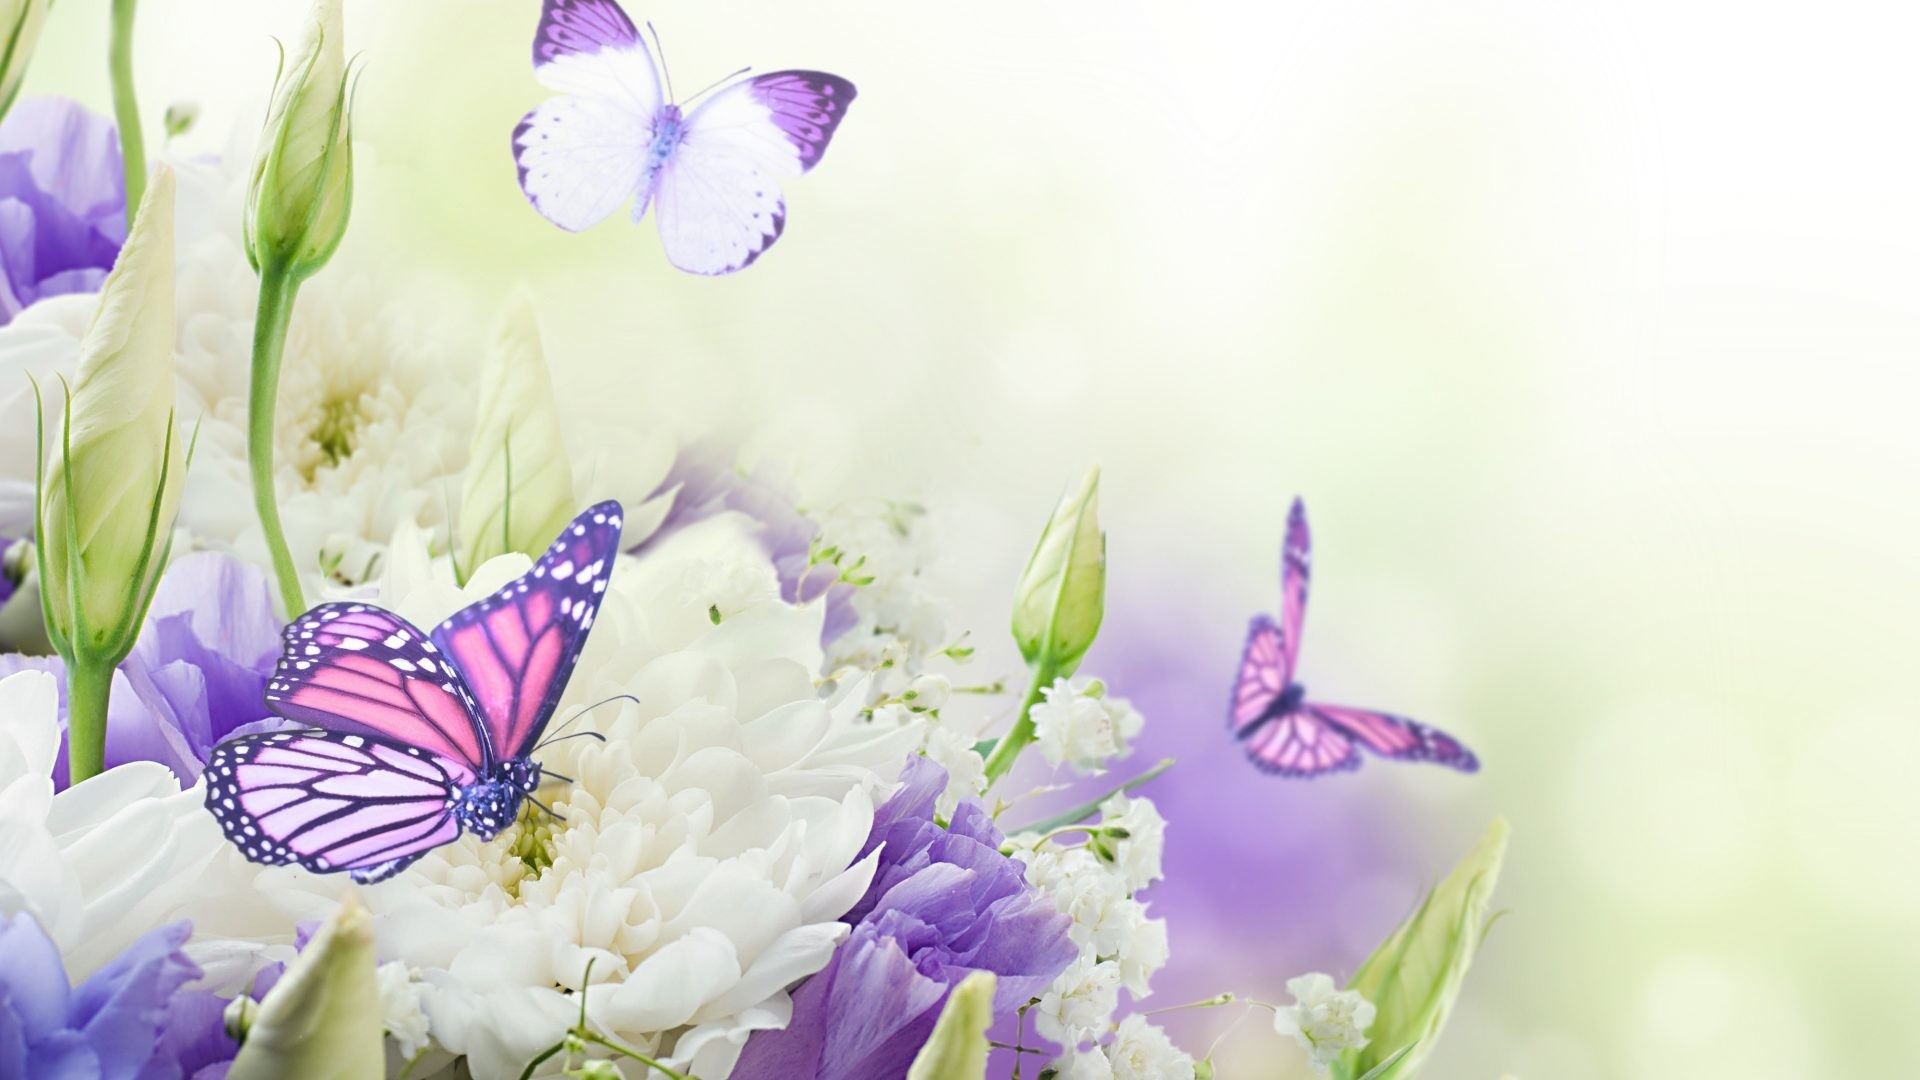 1920x1080 Butterflies Tag - Flowers Beautiful Butterflies Splendor Simply Nature  Flower Wallpapers Big Size for HD 16